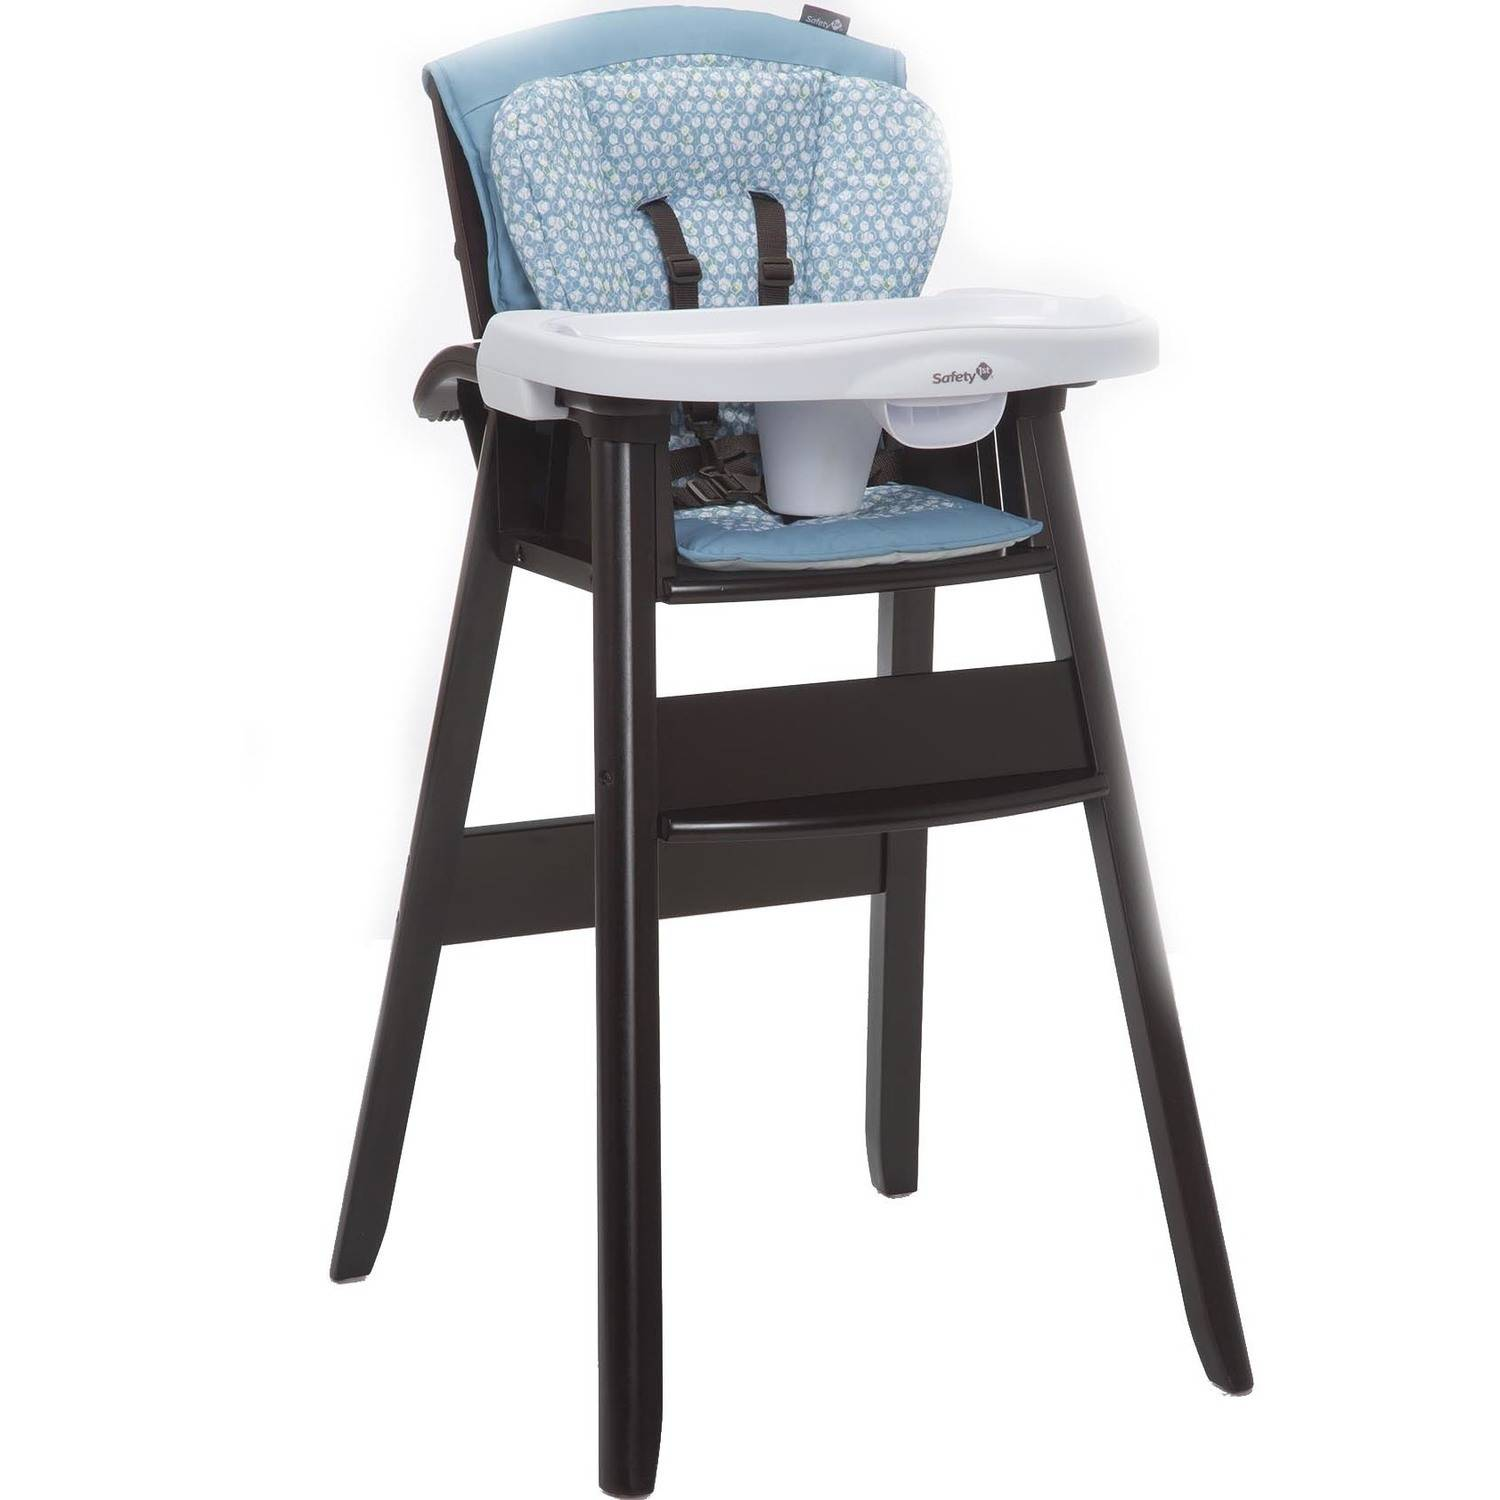 Safety 1st Dine and Recline Wood High Chair, Luminary